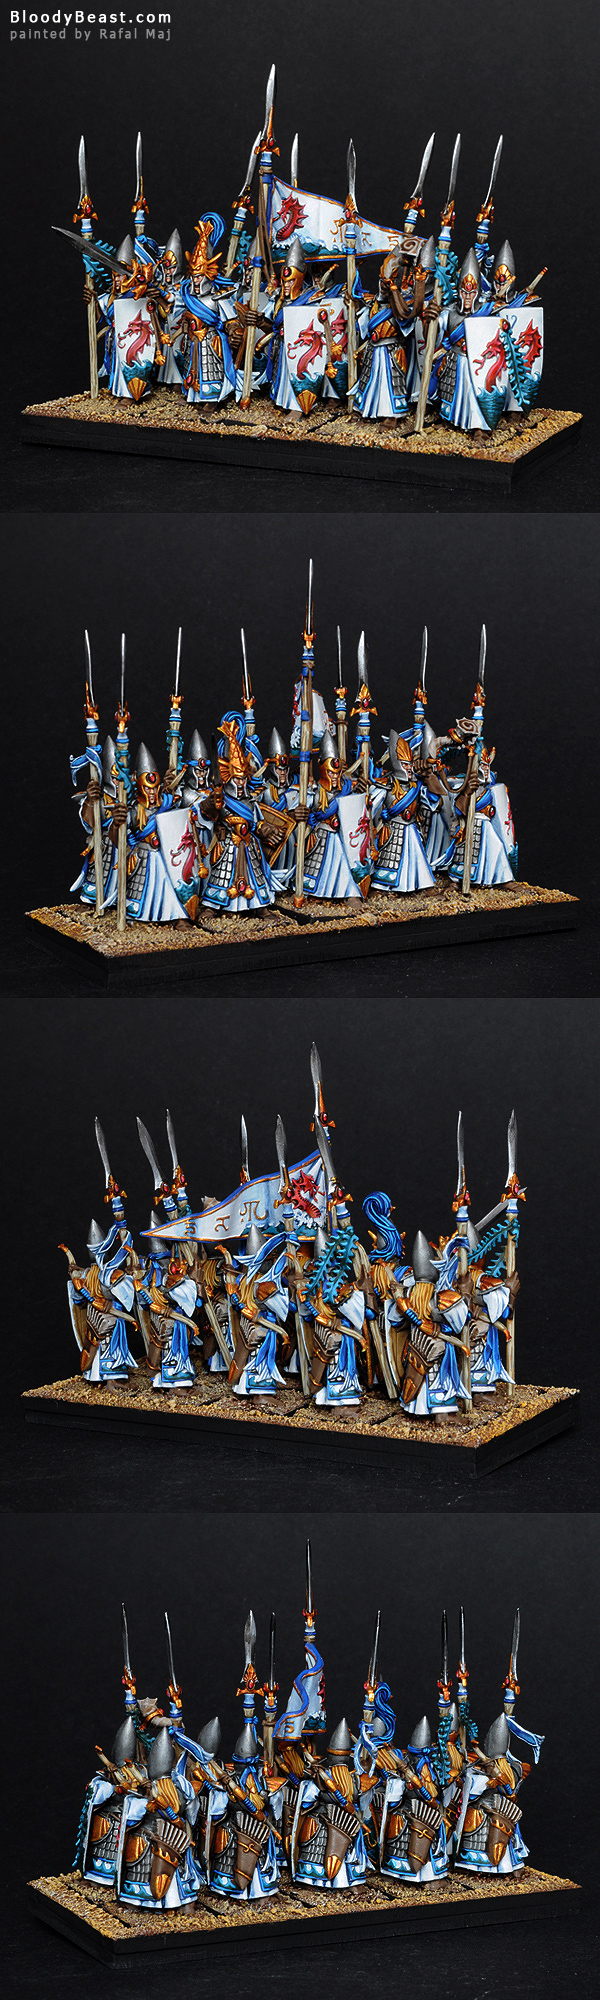 High Elf Lothern Sea Guard painted by Rafal Maj (BloodyBeast.com)